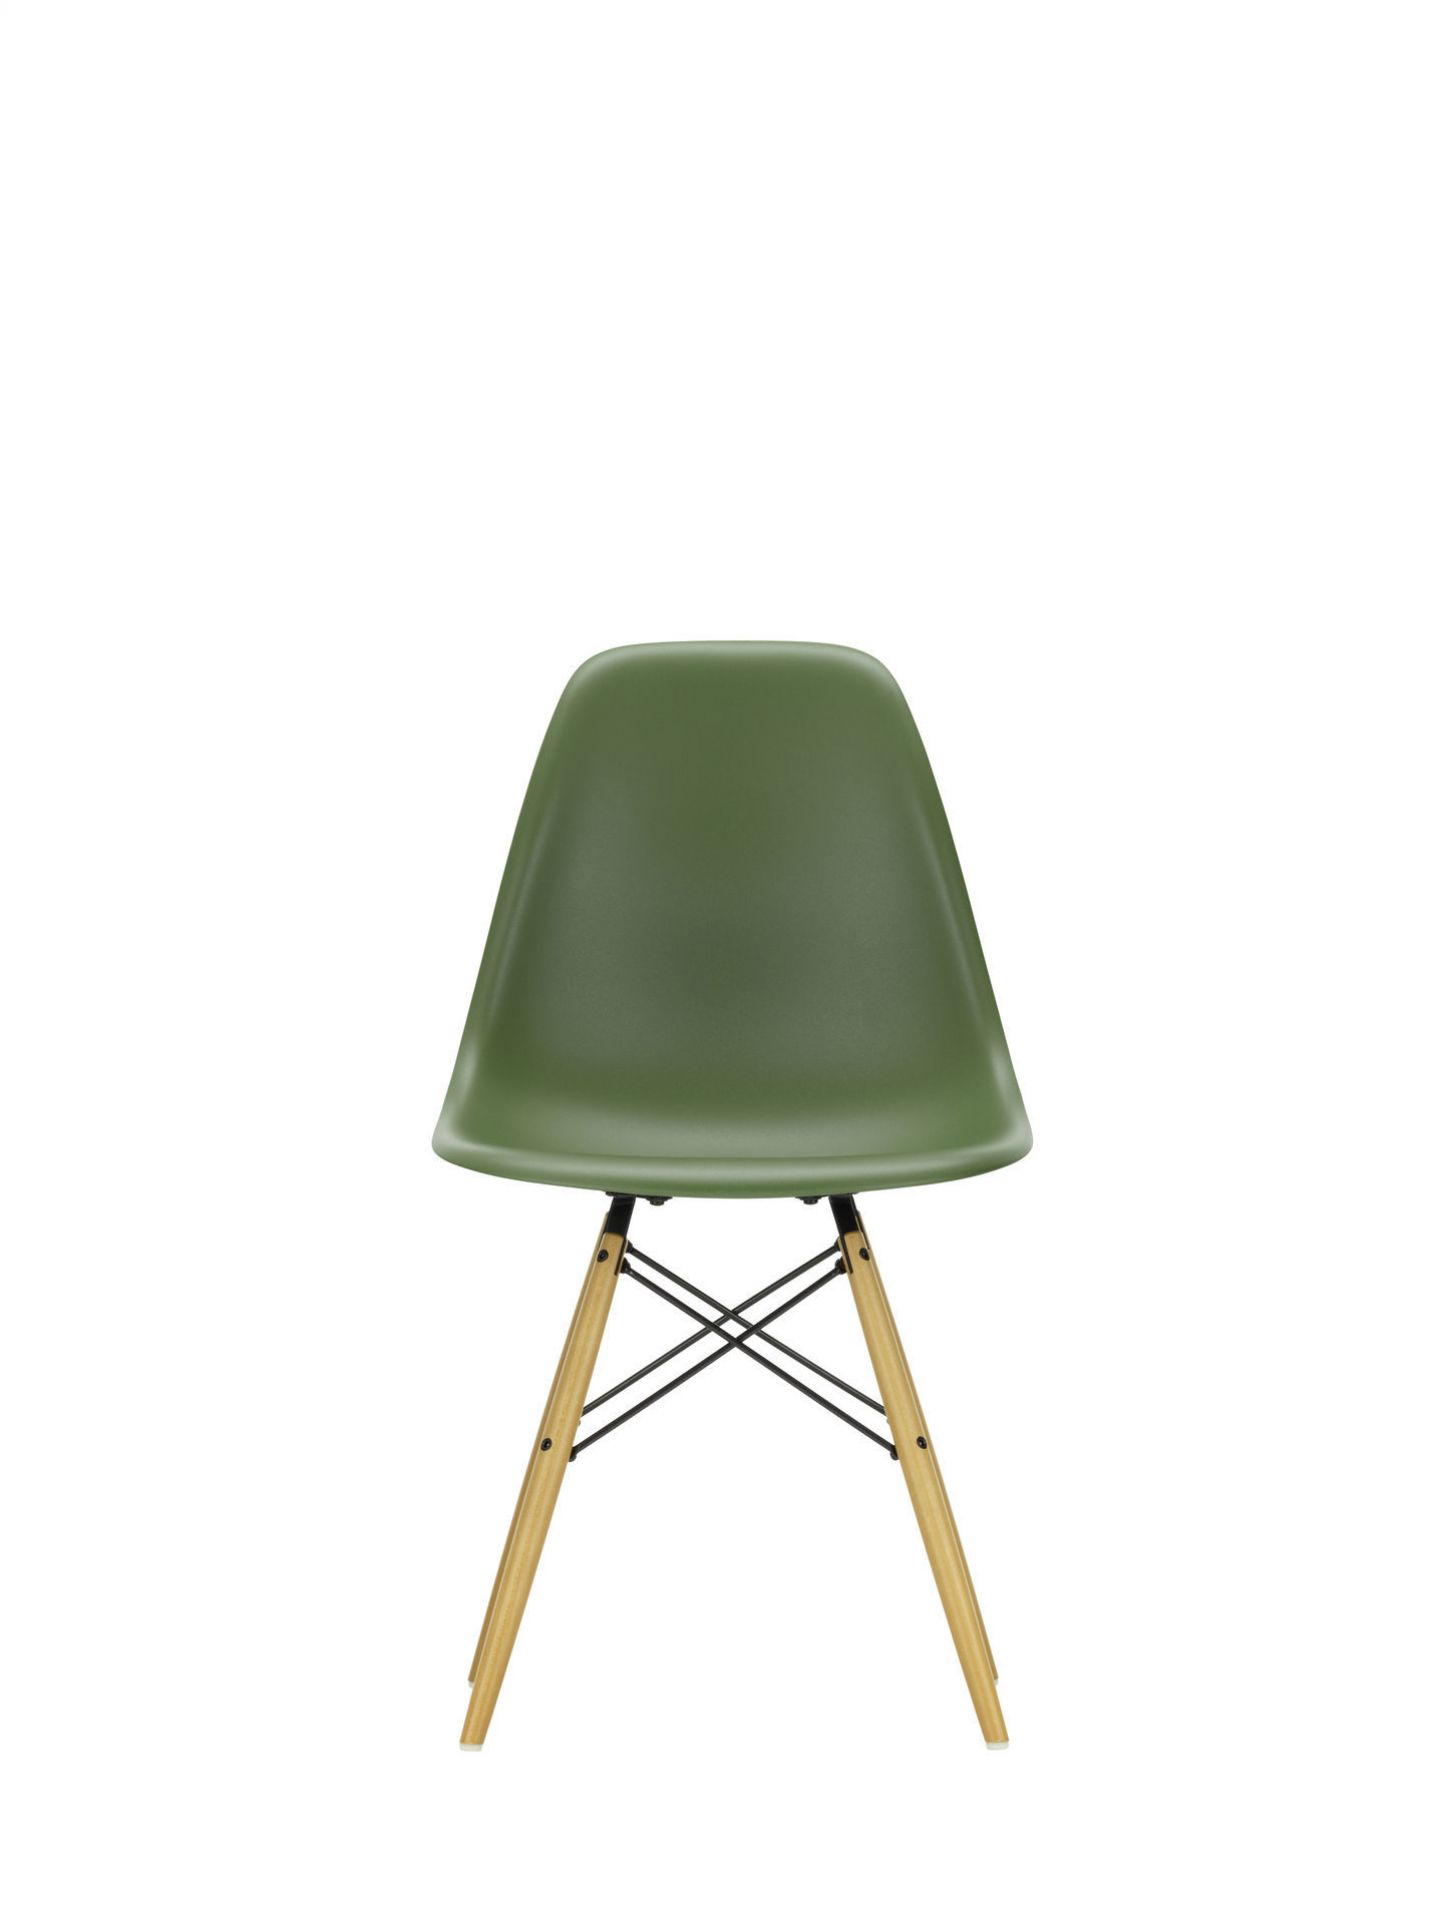 Eames Plastic Side Chair DSW Vitra Ahorn gelblich-Weiss